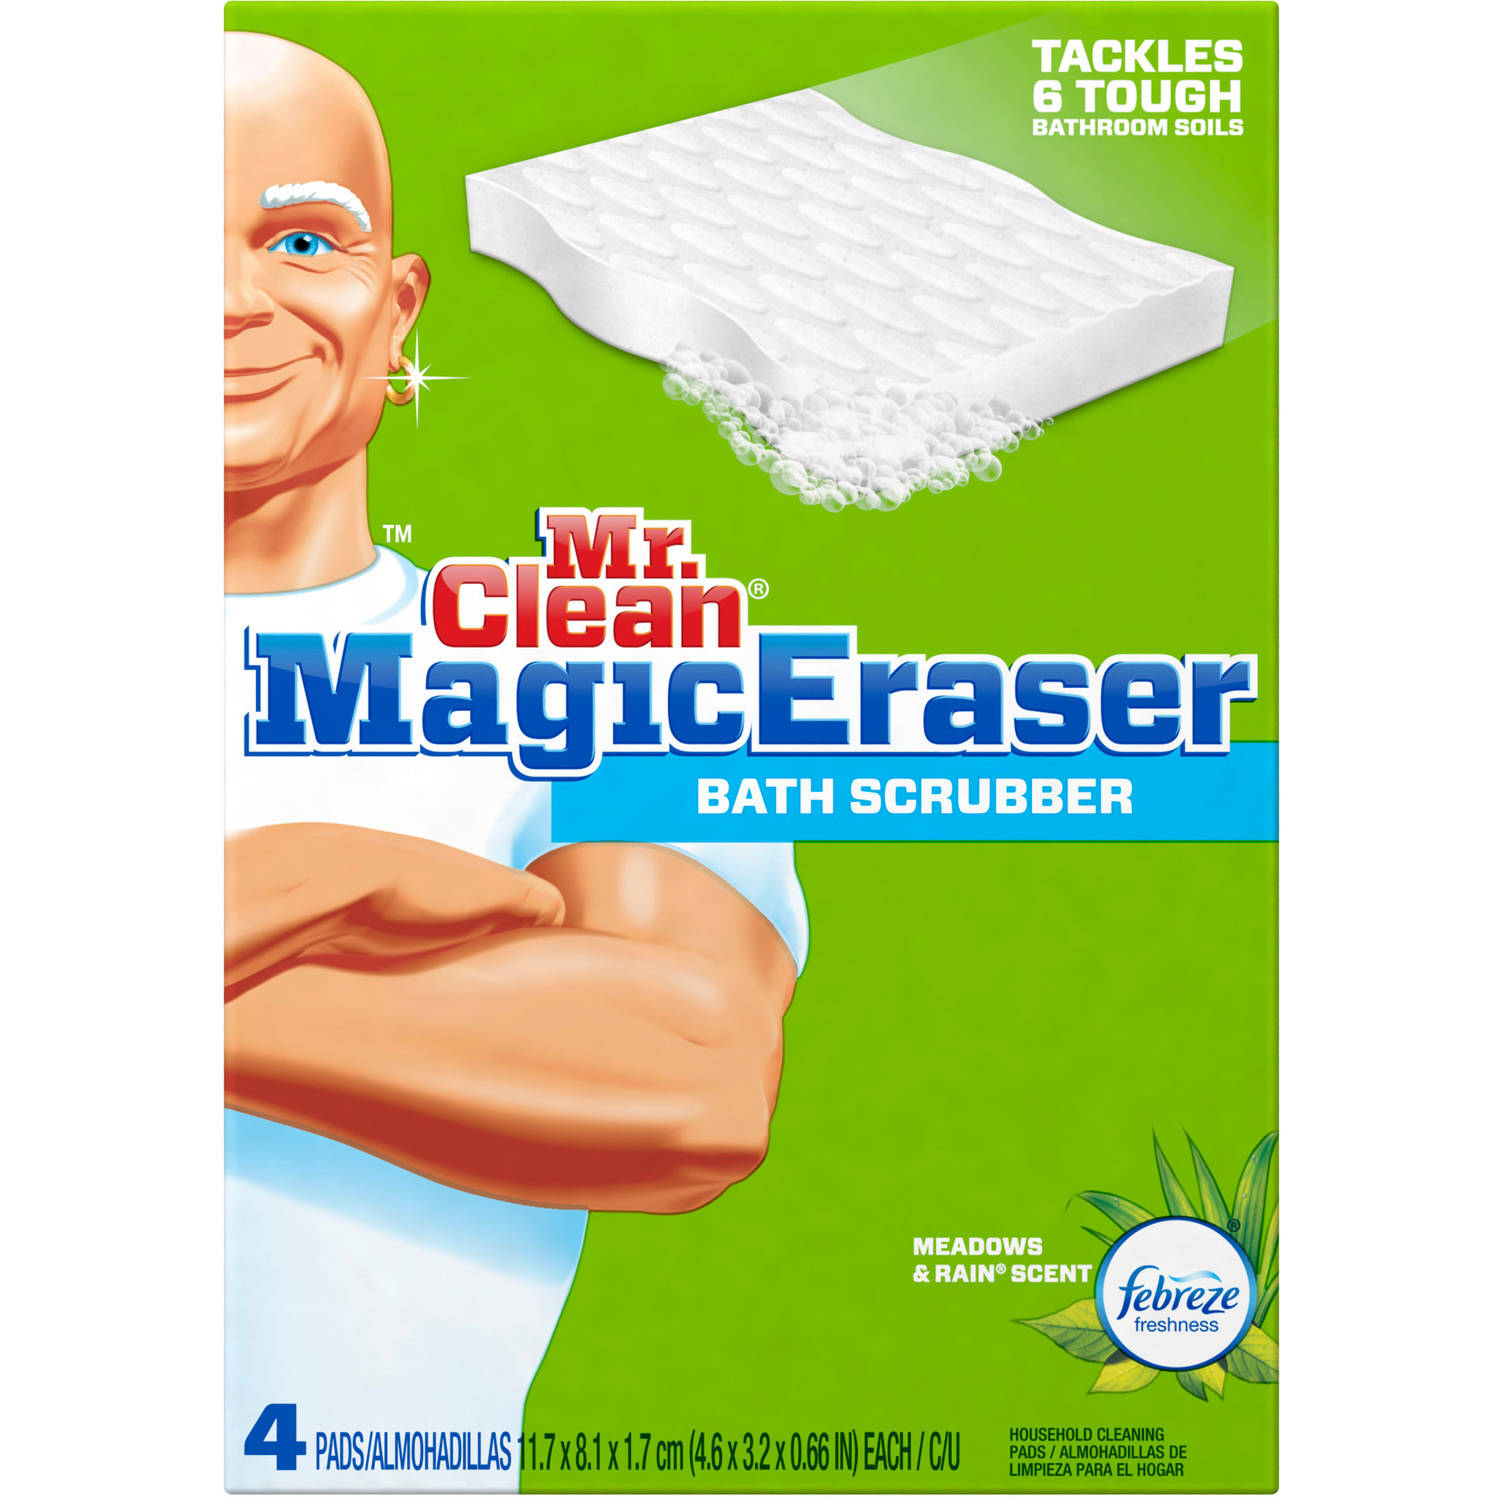 Mr. Clean Magic Eraser Bath Scrubber Febreze Meadows & Rain Scent Cleaning Pads, 4 count